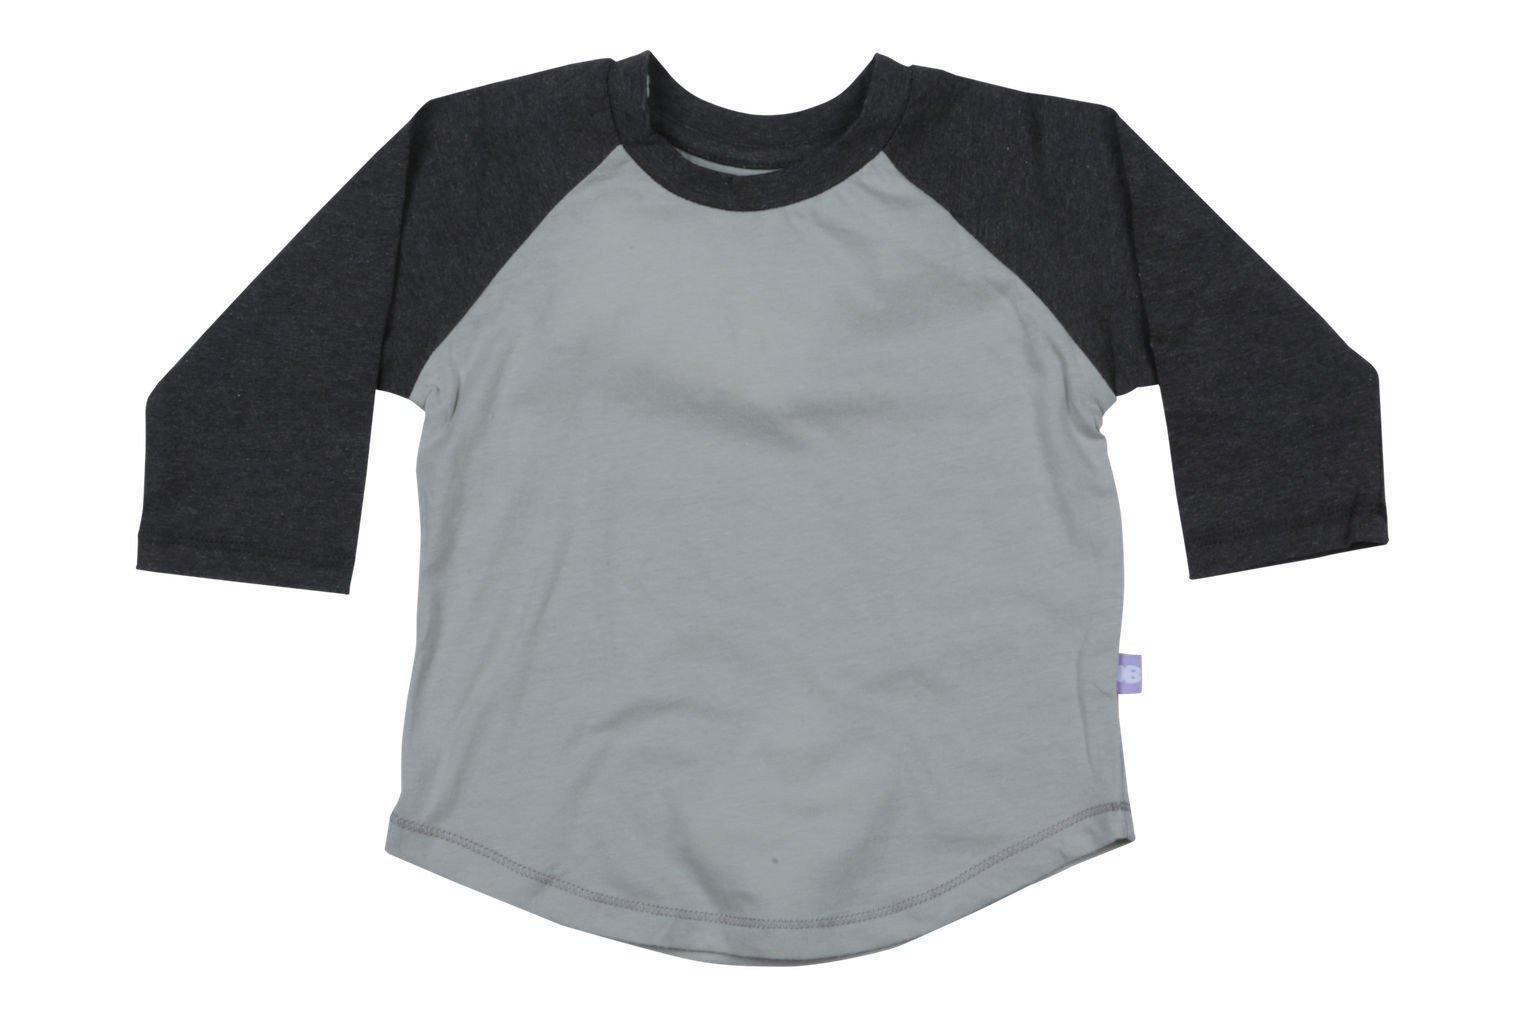 Melange T-Shirt in Organic Cotton - HUGABUG